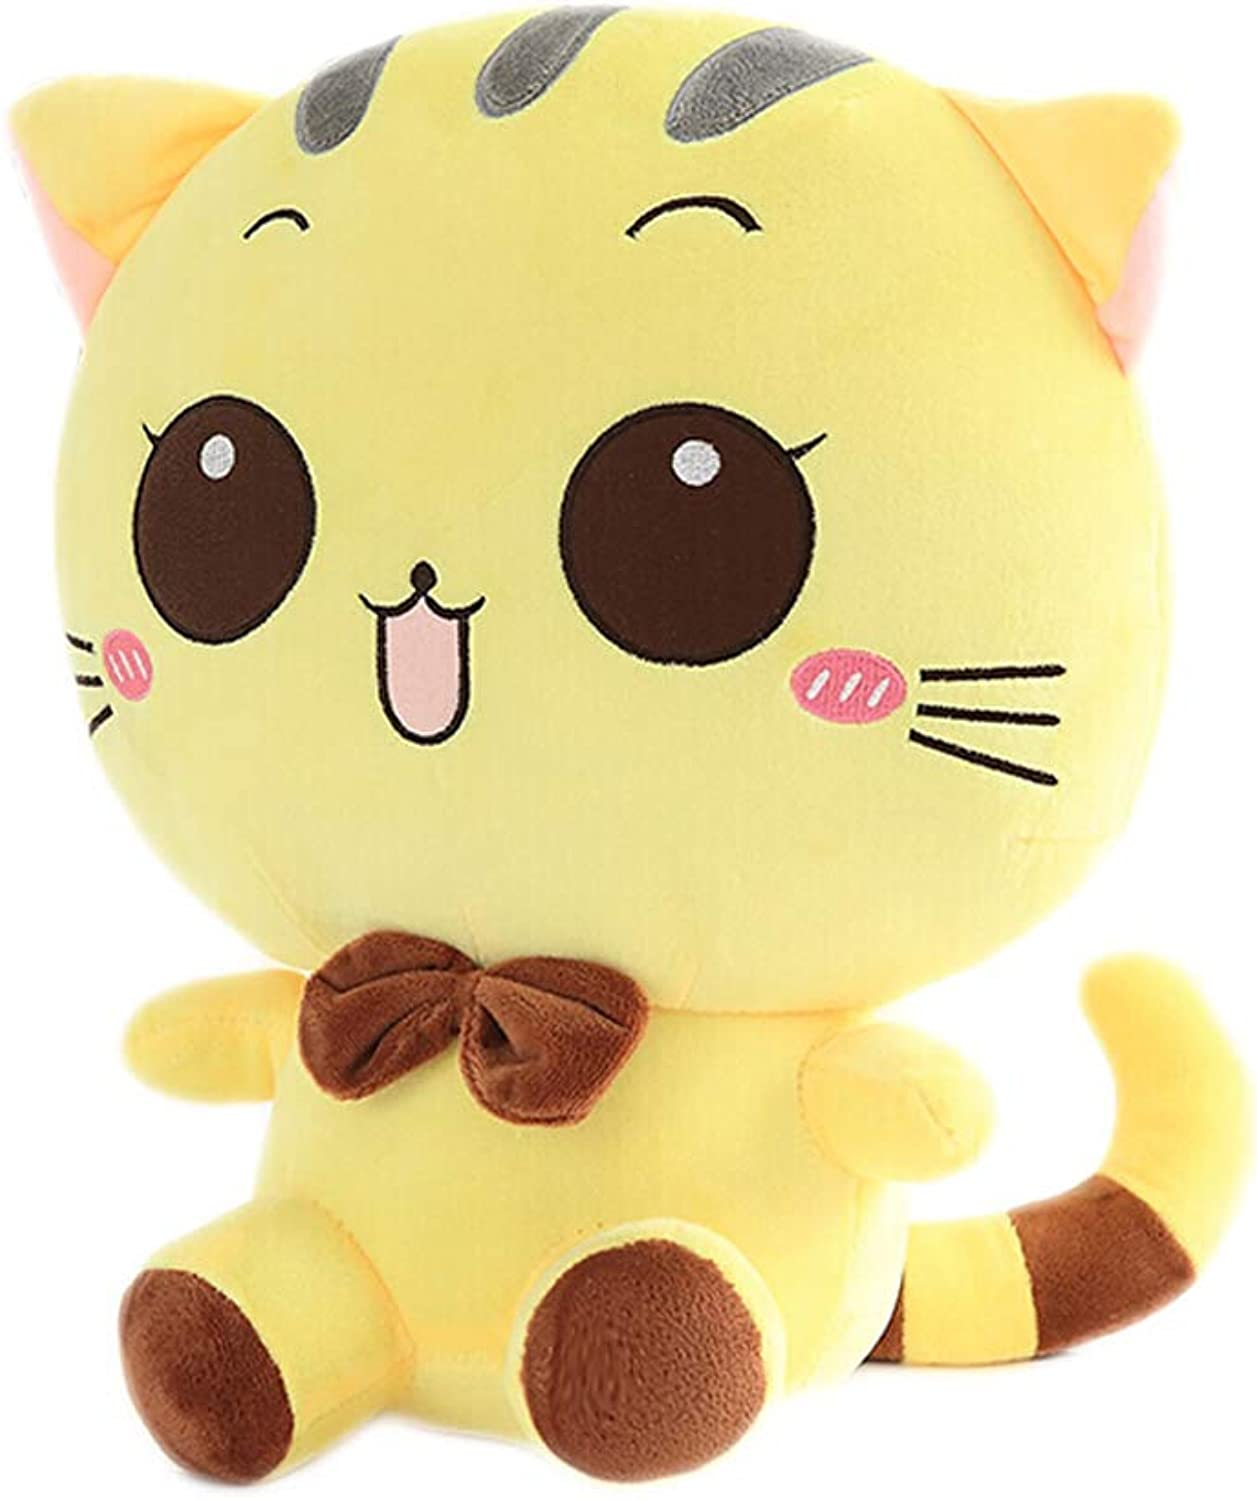 Zhijie Cat Plush Emoji Cushion Pillow PP Cotton Filling Home Decor Doll Smiling Face Cartoon Stuffed Toys Gifts 60CM 23.6 Inch (color   Yellow round eyes)